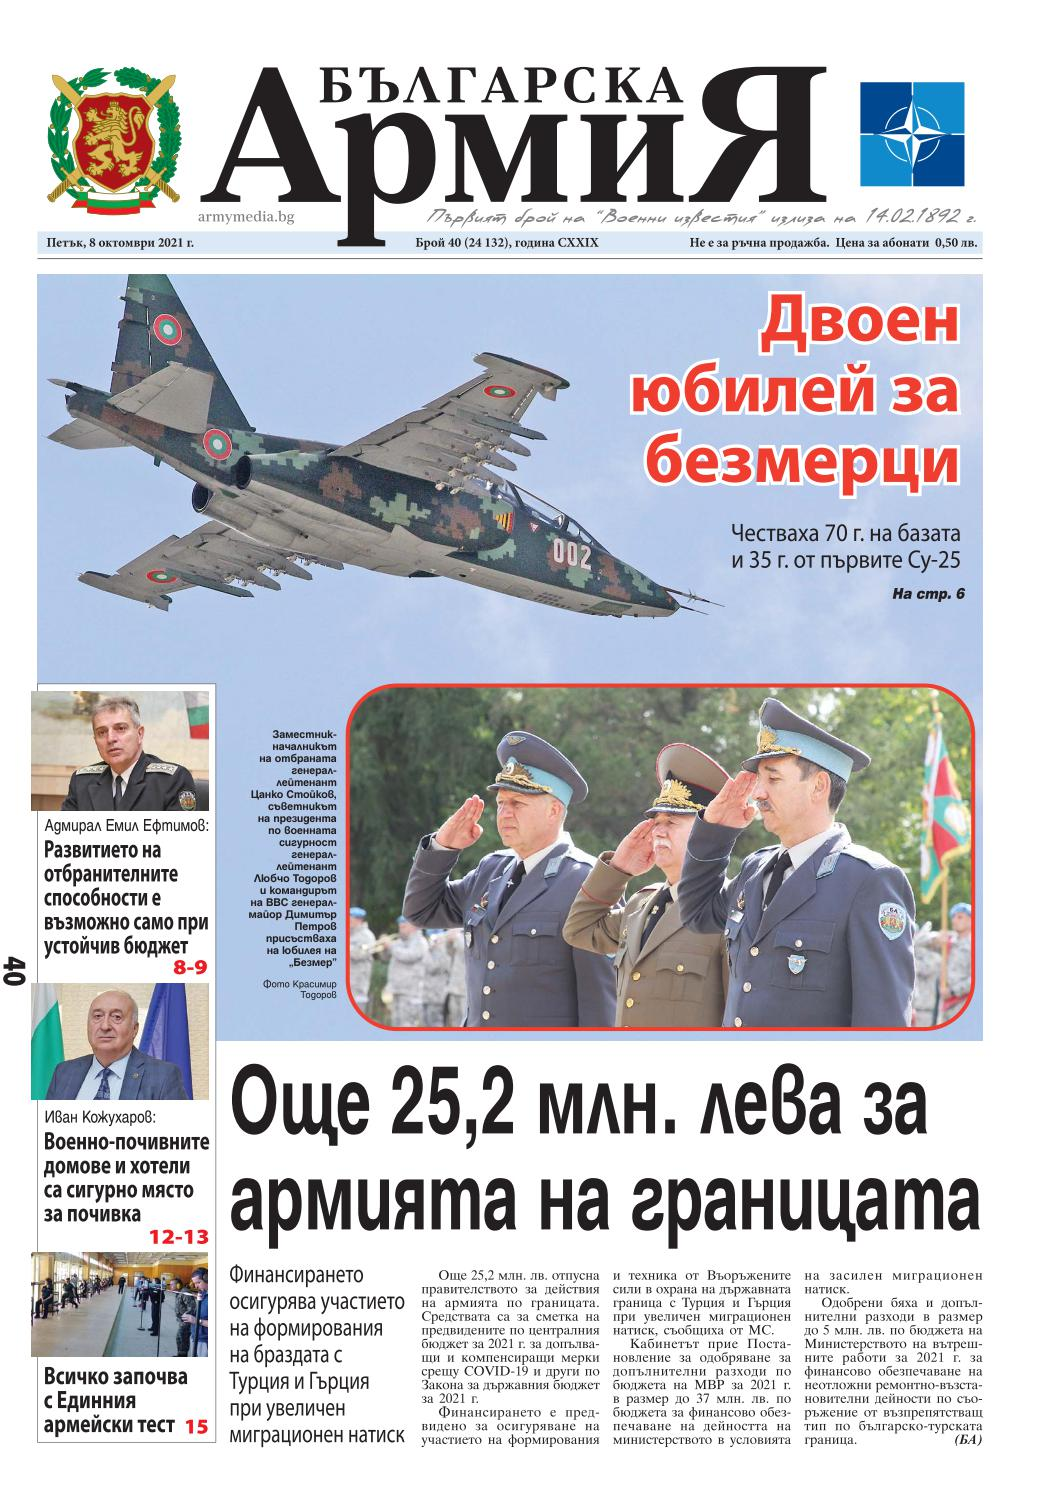 https://armymedia.bg/wp-content/uploads/2021/10/01.page1_-1.jpg